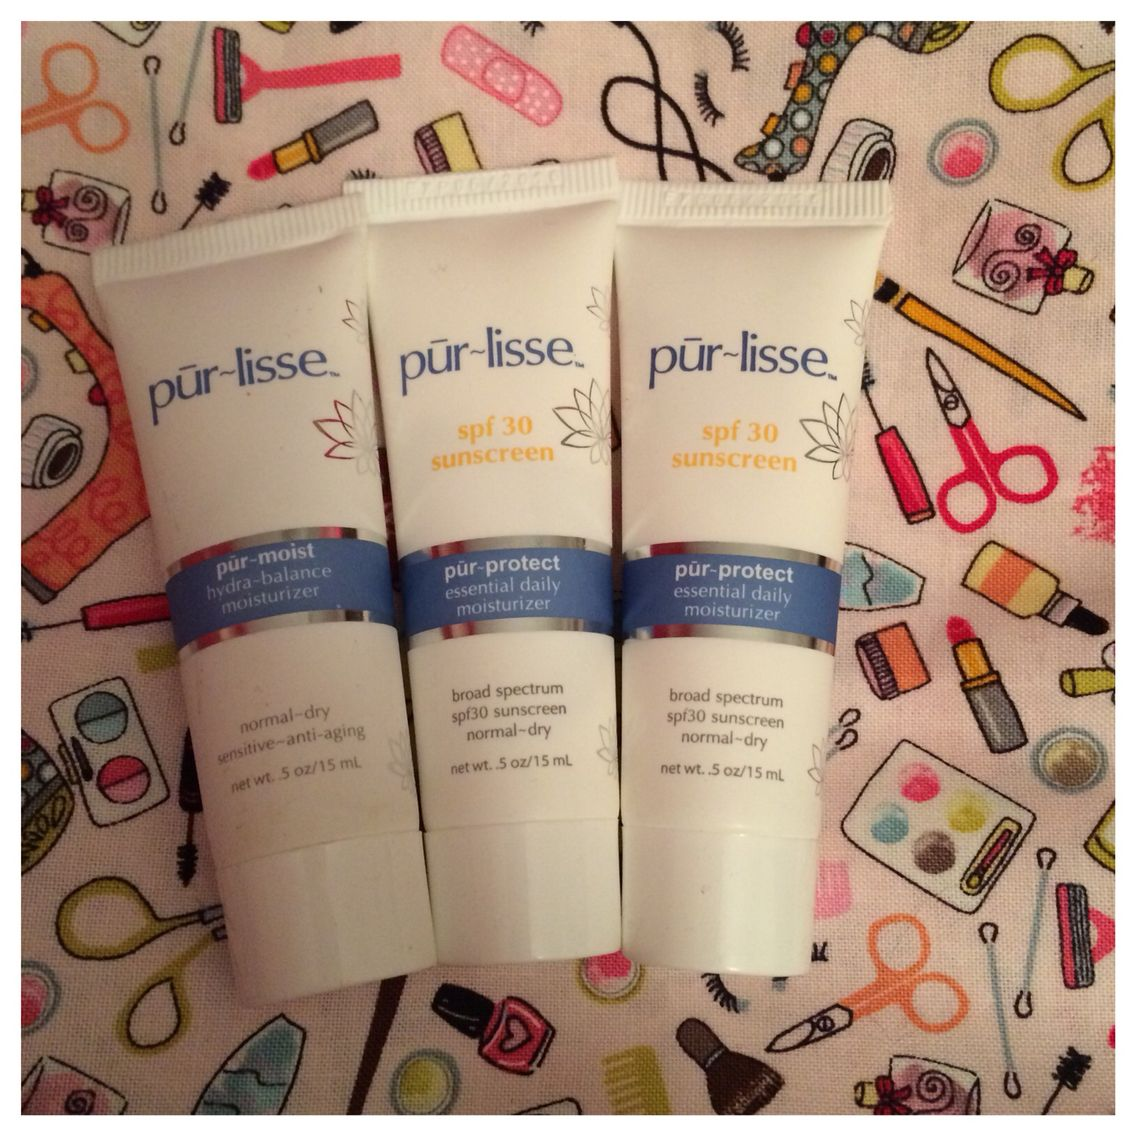 From Ipsy: 3 Purlisse products.